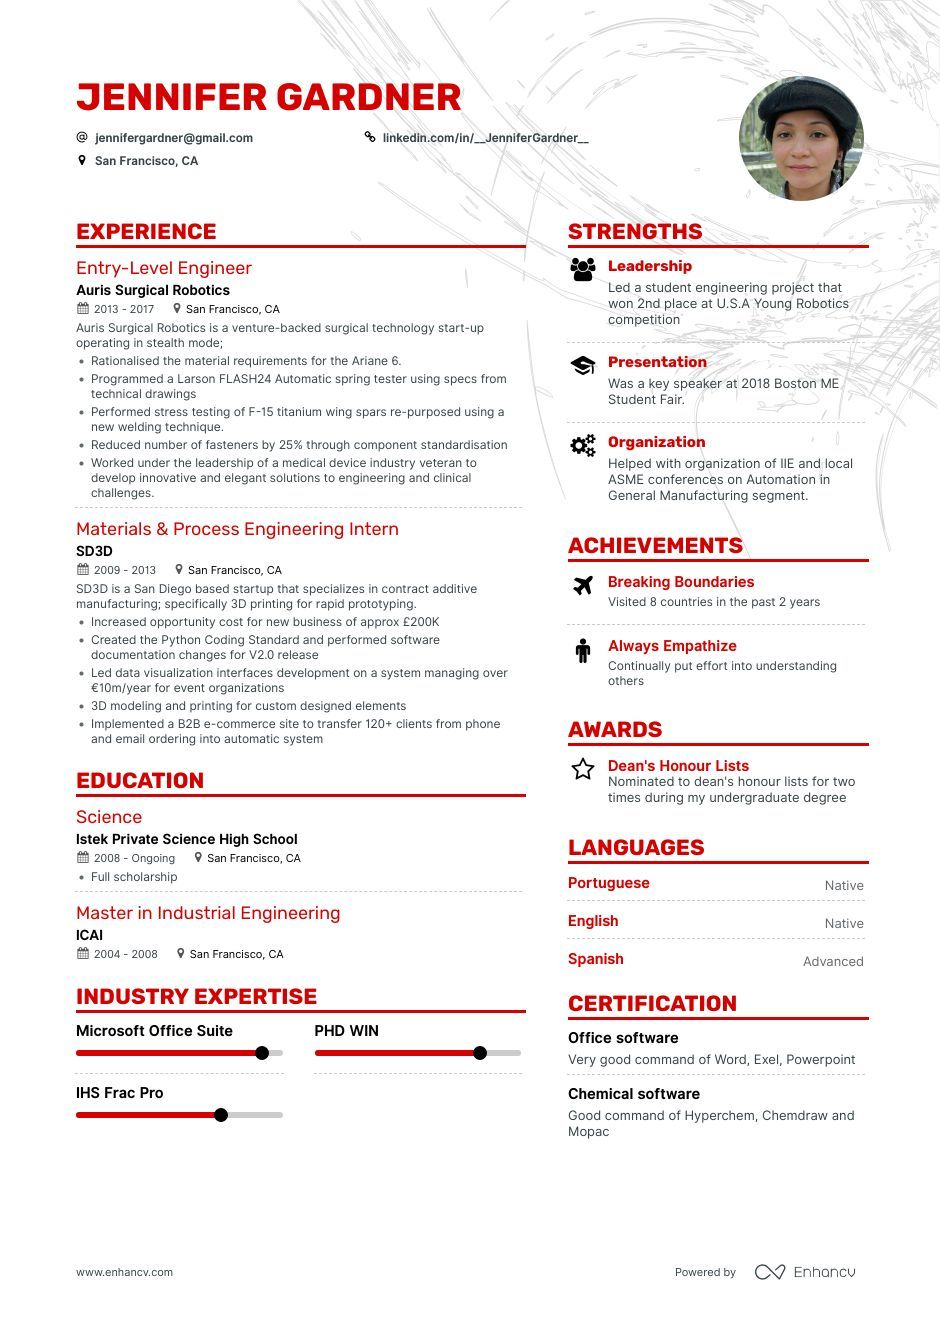 How to write an engineering intern resume that will get